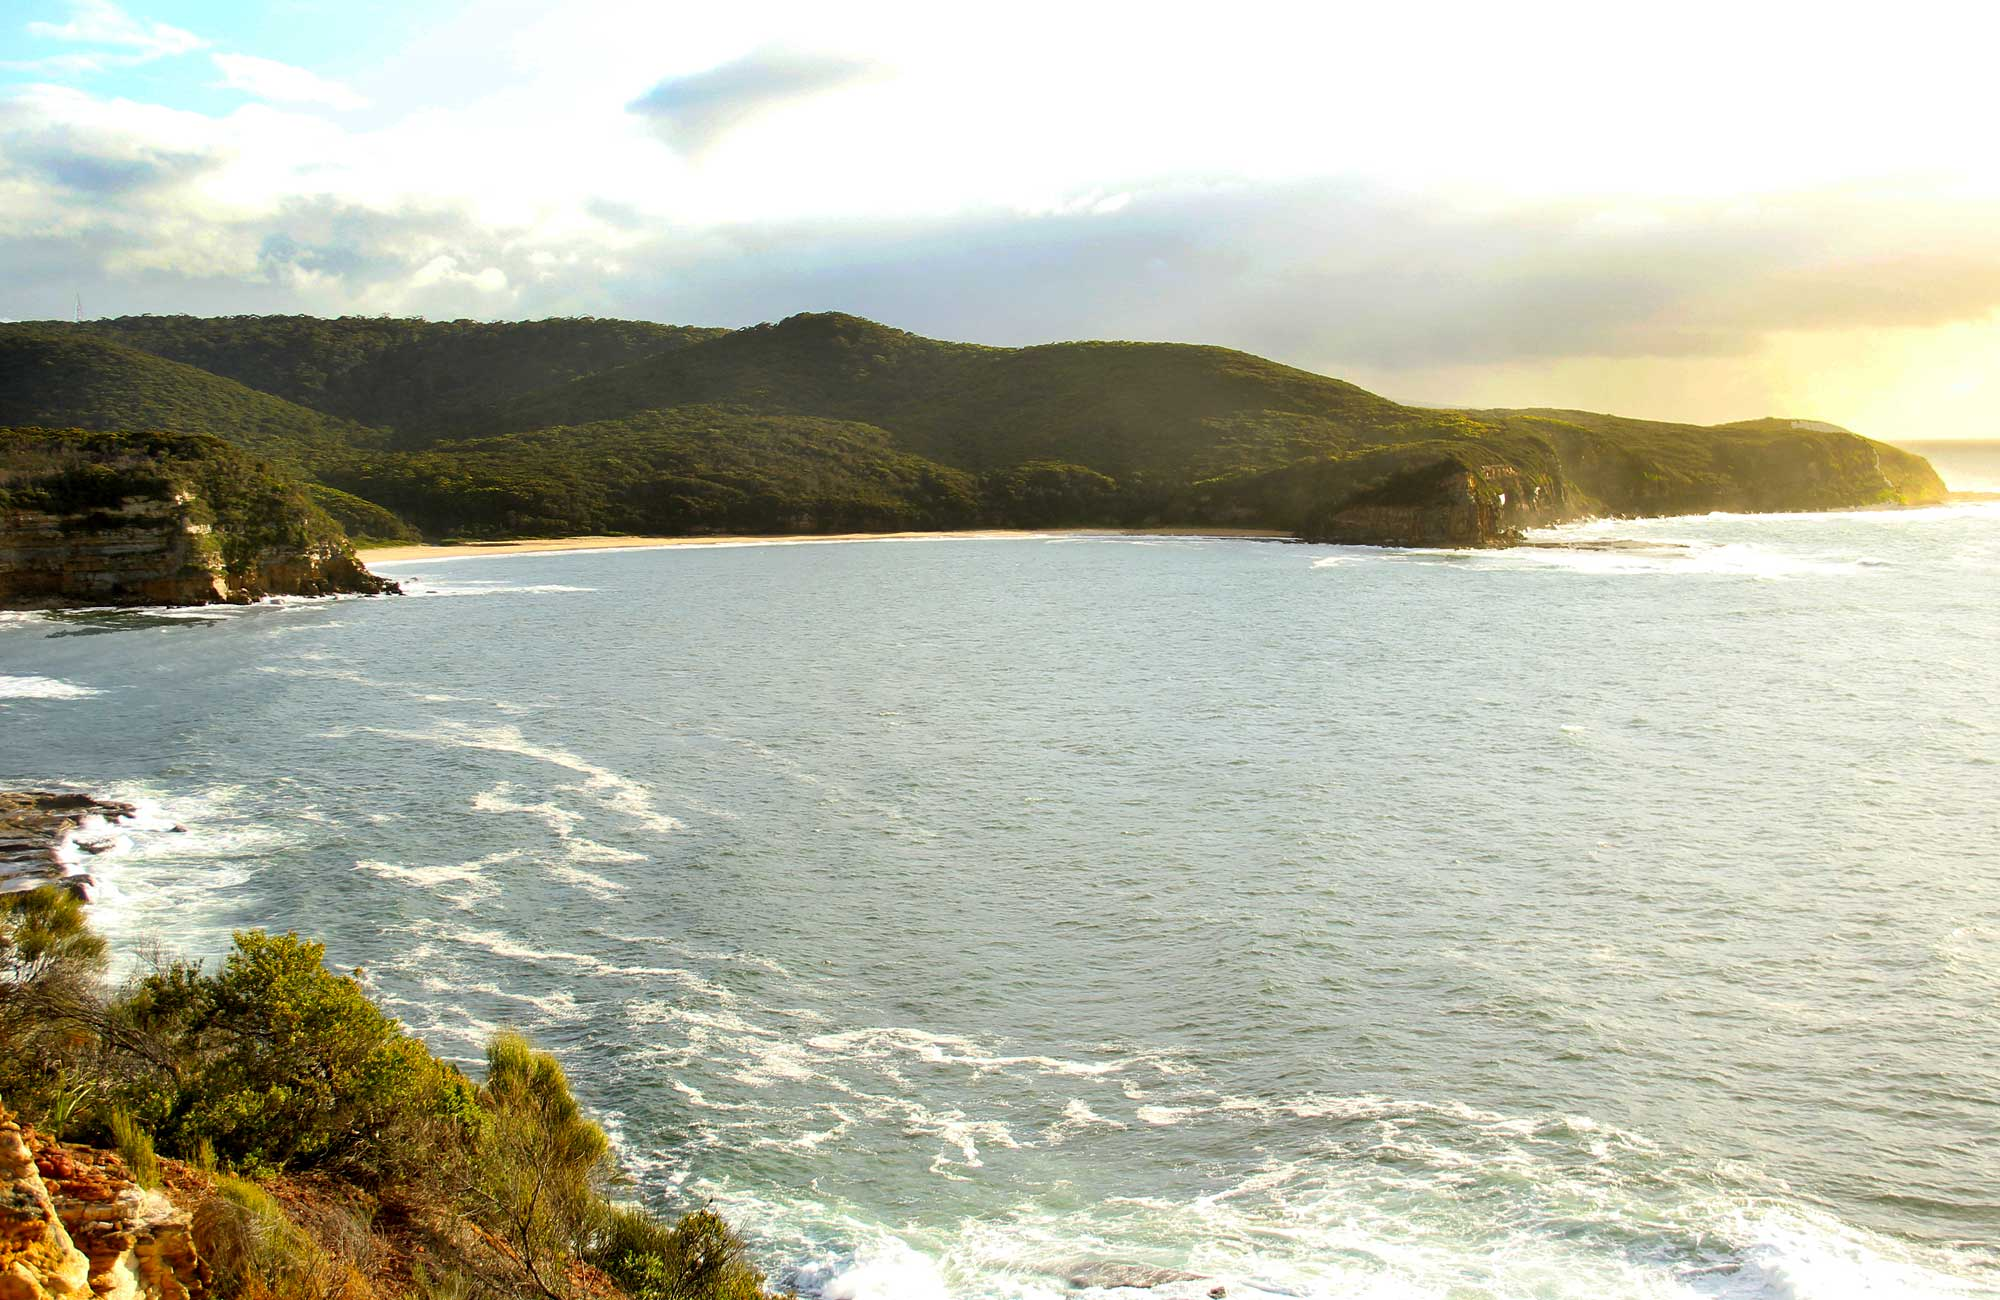 The view from the lookout along the coast. Photo: John Yurasek